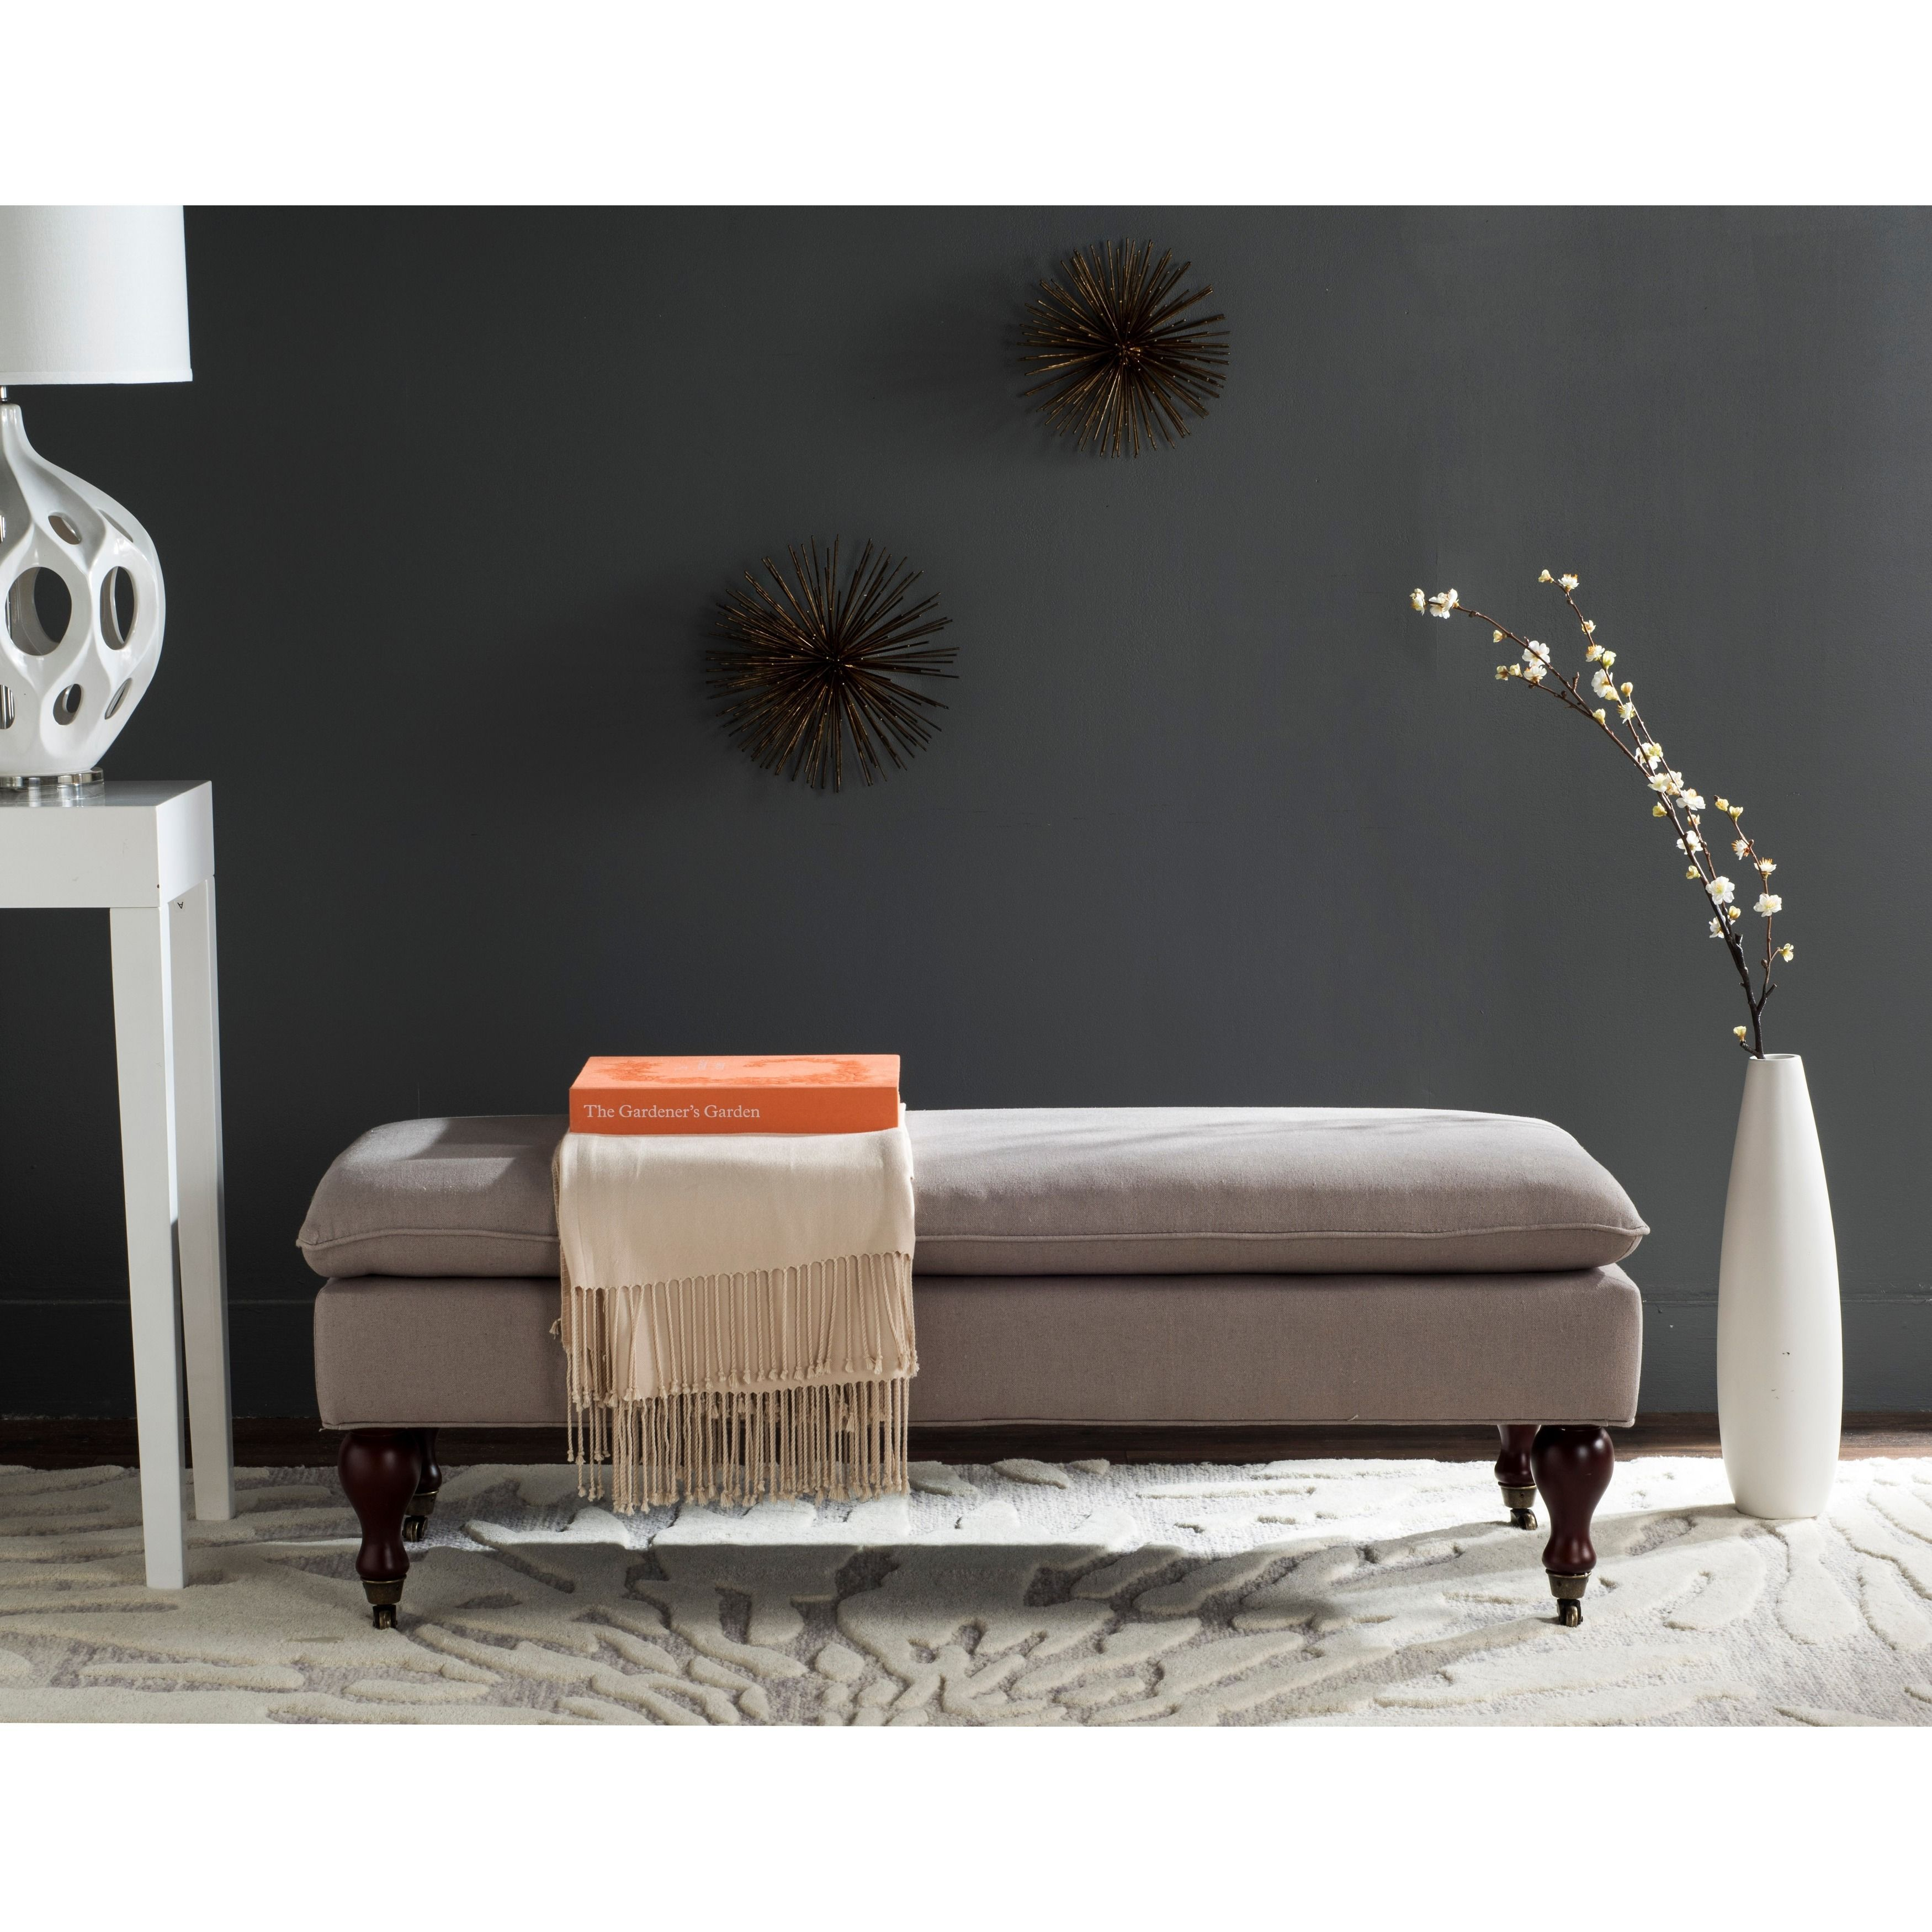 Add An Elegant Touch To Any Room With This Stylish Linen Ottoman